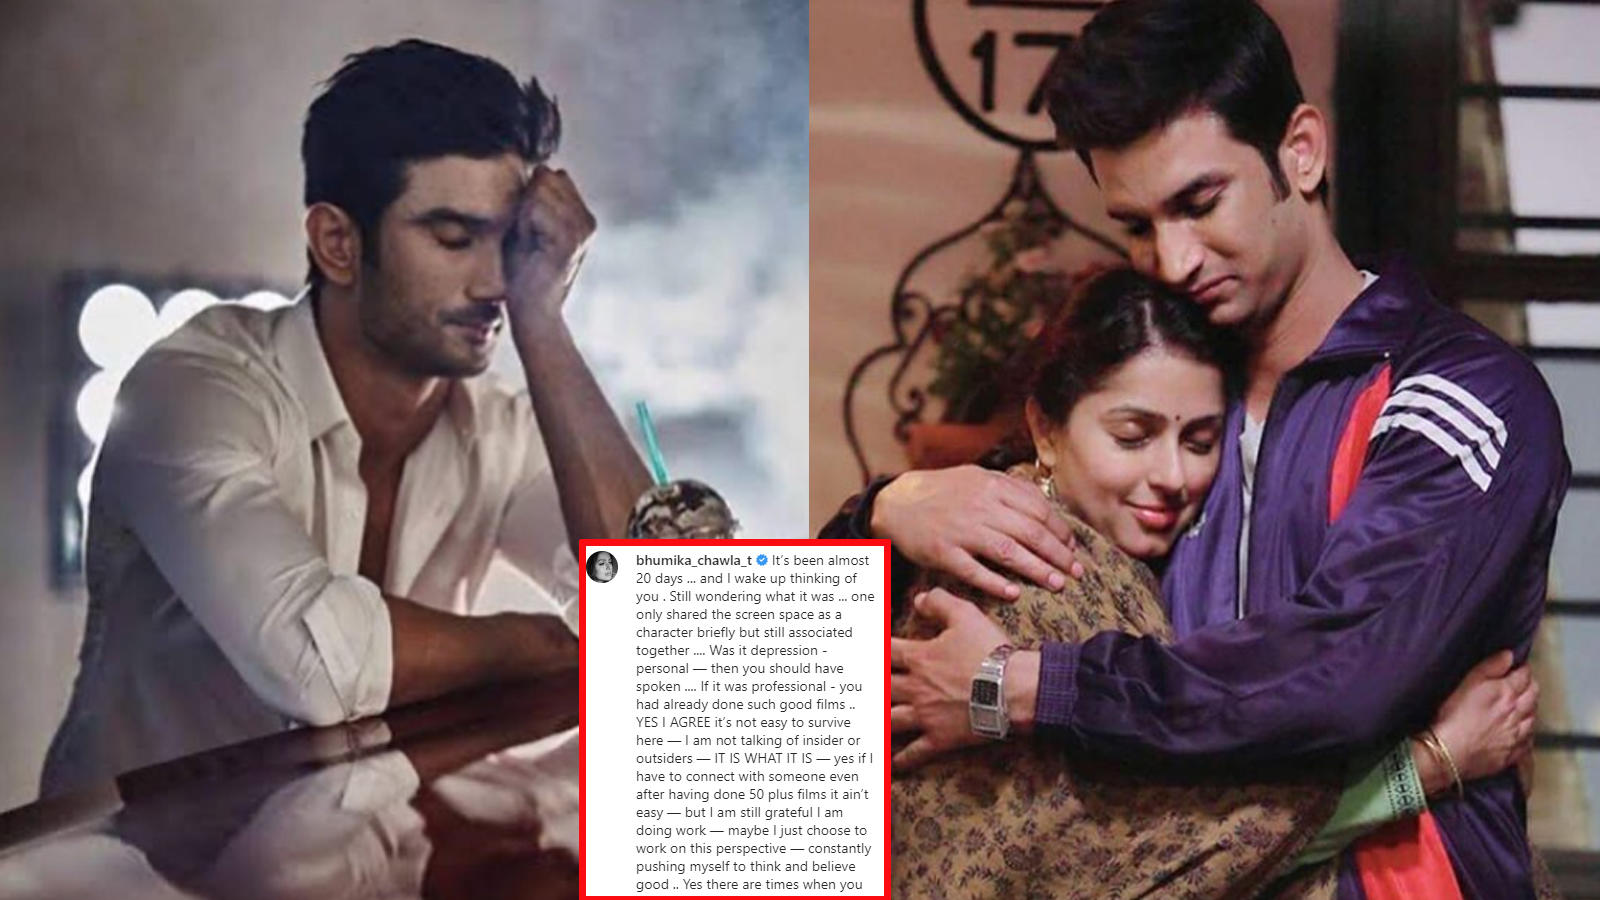 sushant-singh-rajputs-reel-life-sister-in-ms-dhoni-the-untold-story-bhumika-chawla-writes-i-wake-up-thinking-of-you-still-wondering-what-it-was